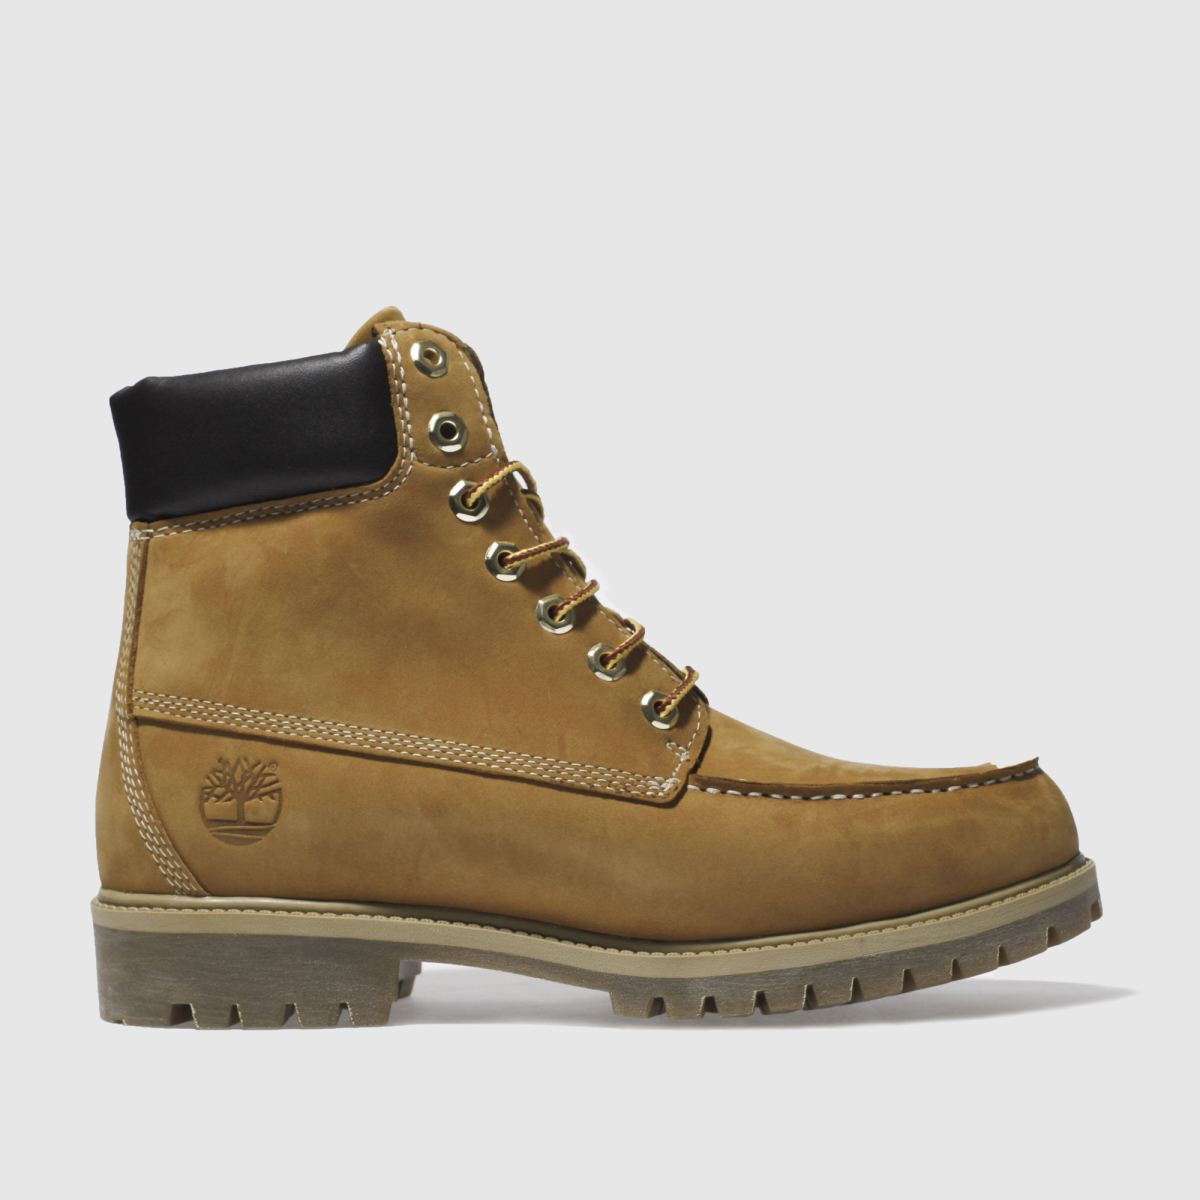 timberland natural 6 inch premium moc toe boots